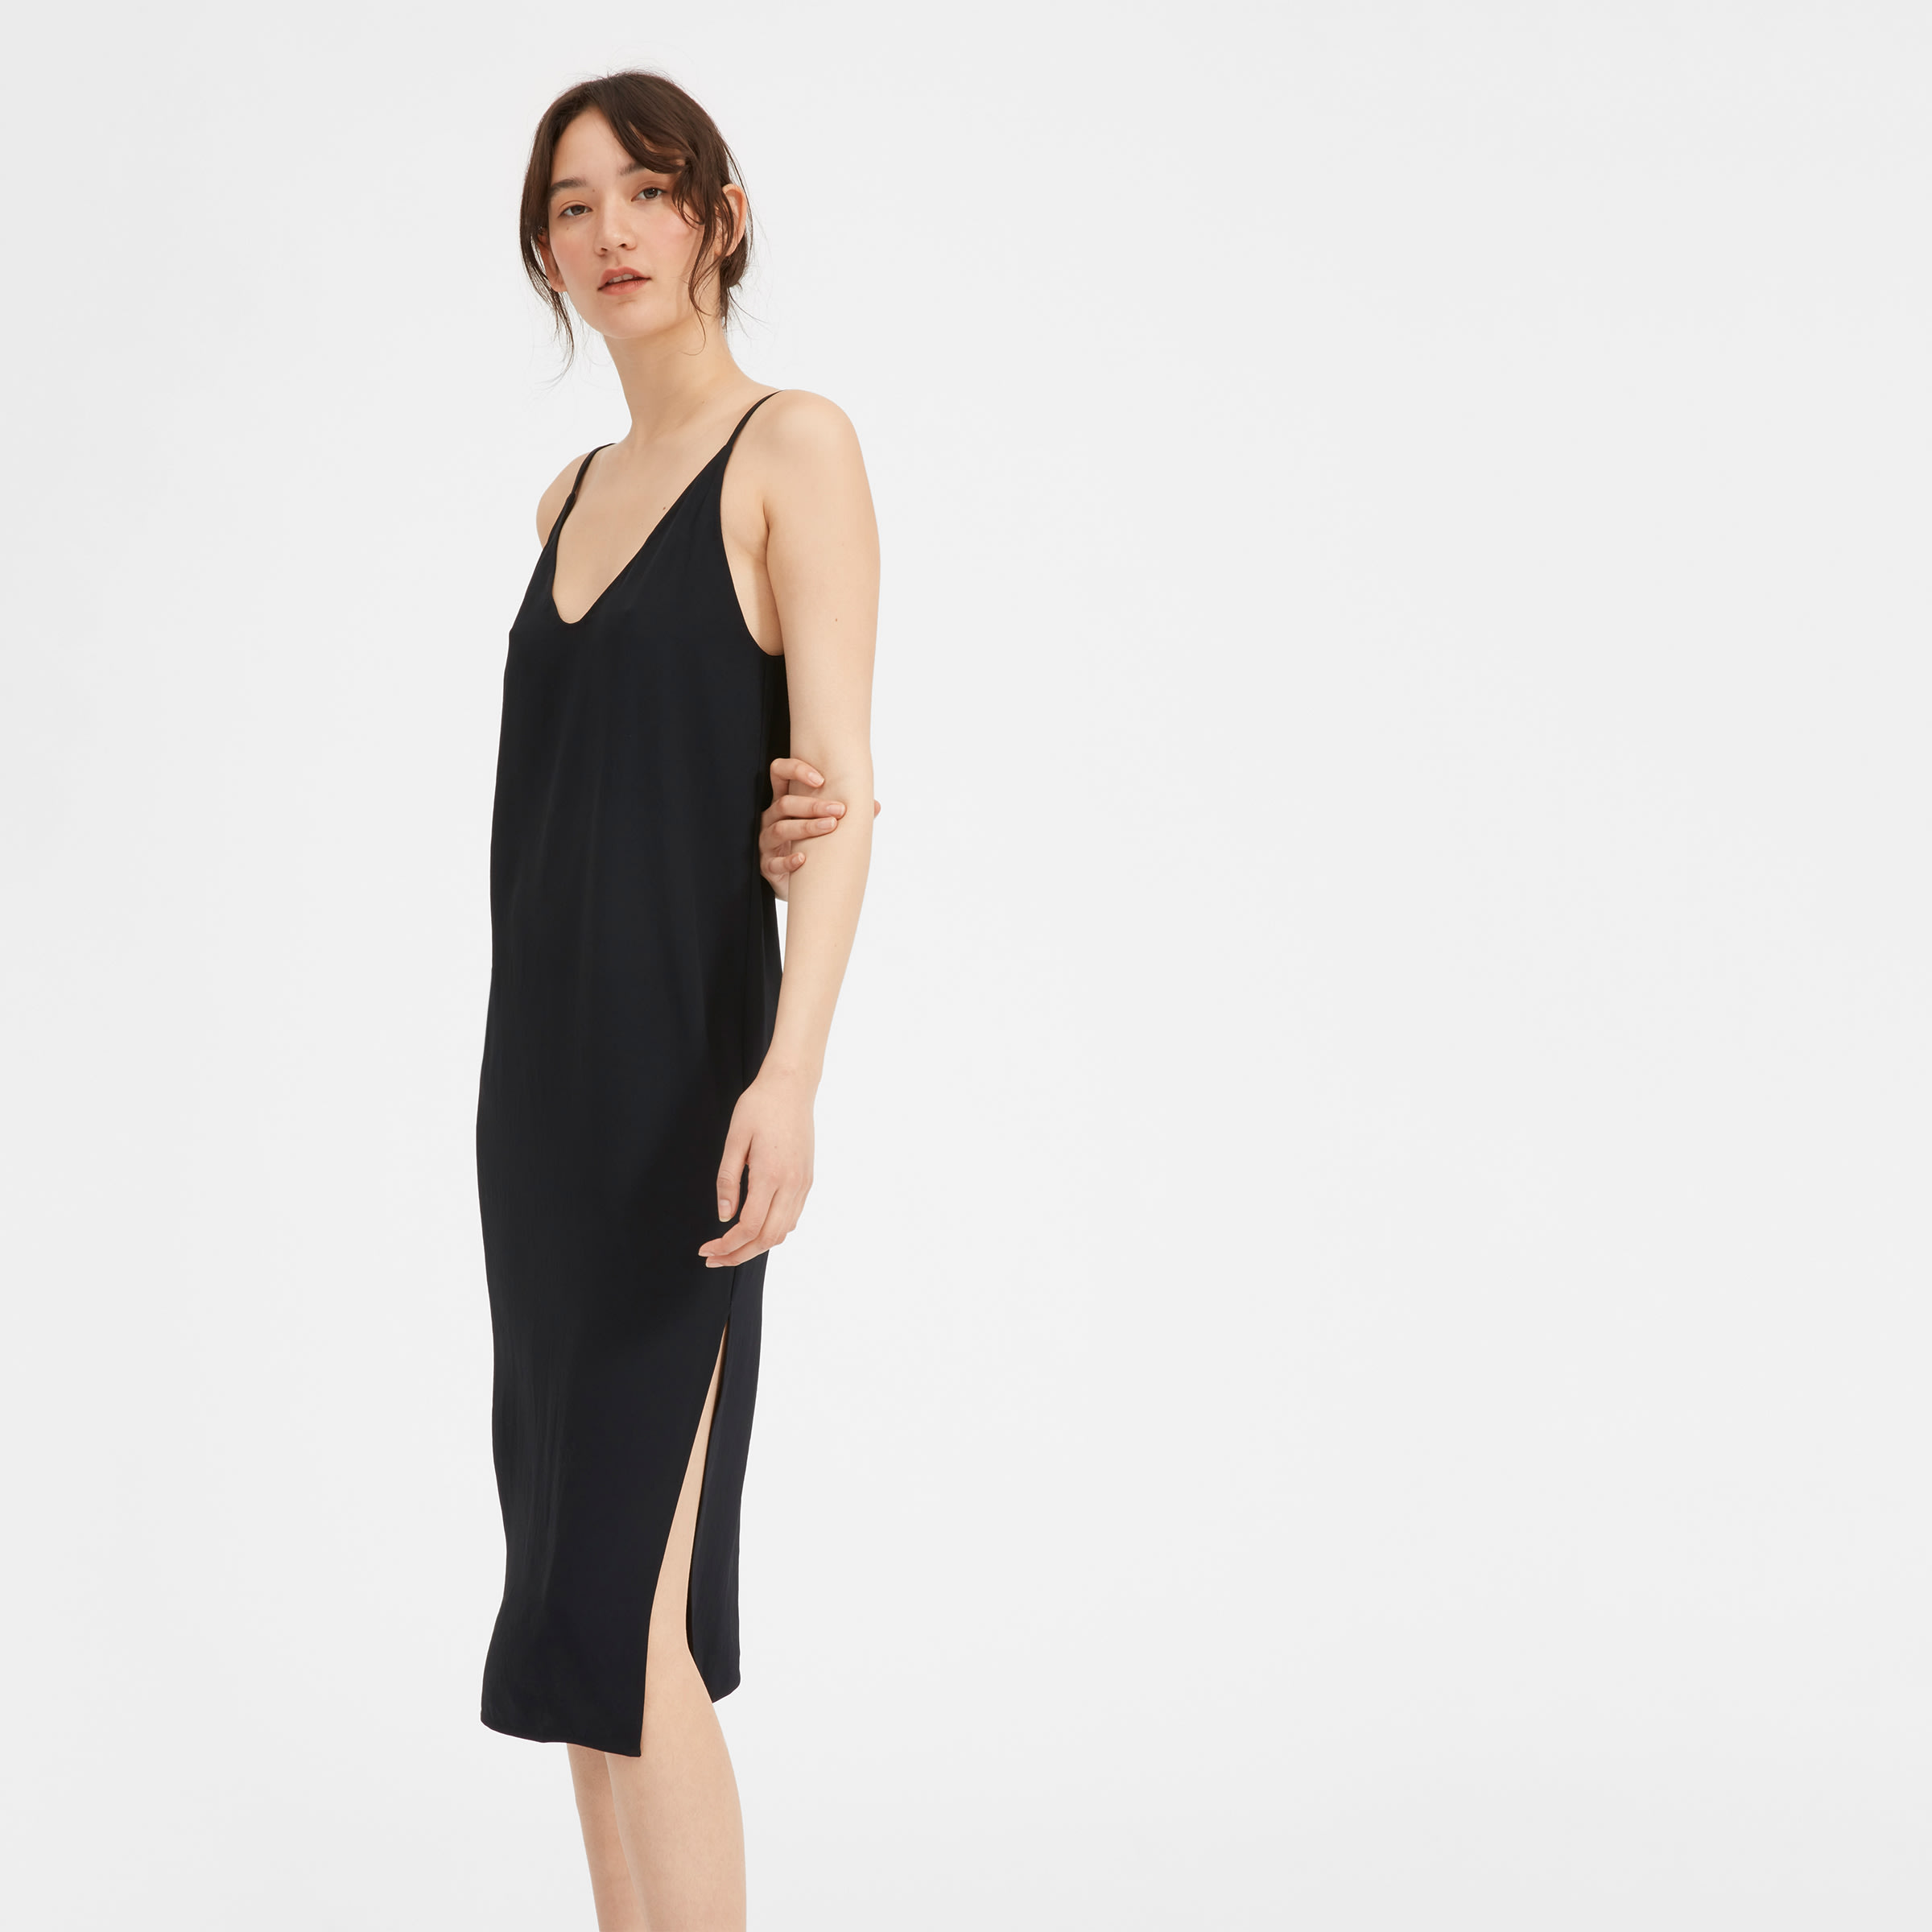 Everlane - GoWeave Slip DressThe ultimate cocktail hour dress. I love that this slip dress still has shape and can be used with a jacket of any kind, or undershirts on a cooler day. The length too is perfect for boots, sandals or heels. A great economical option.